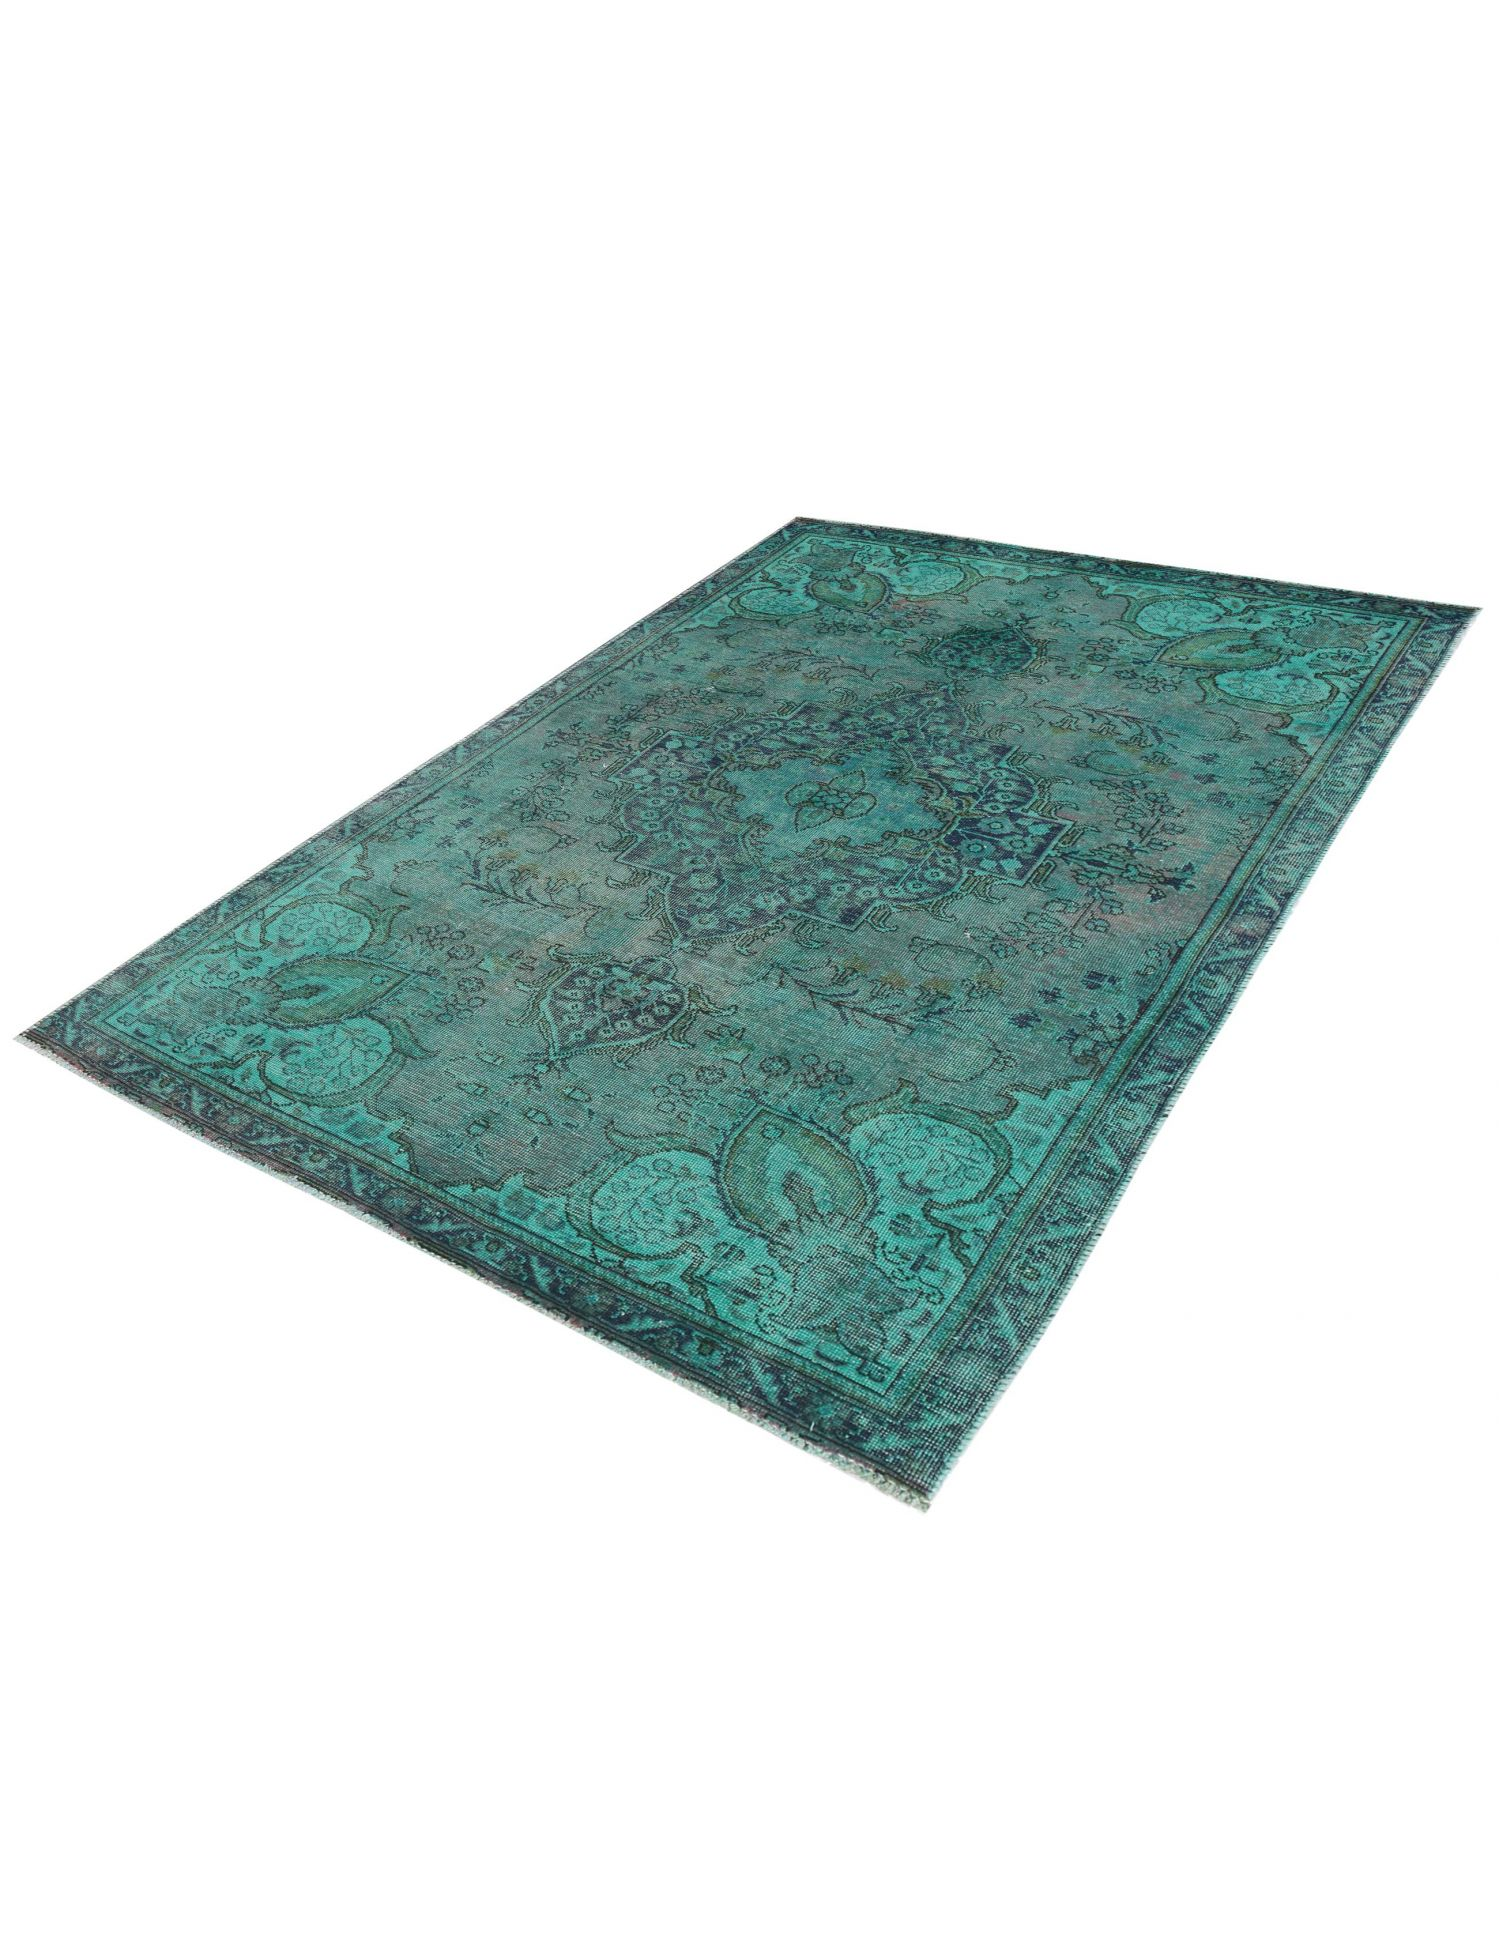 Vintage Carpet  green <br/>234 x 141 cm